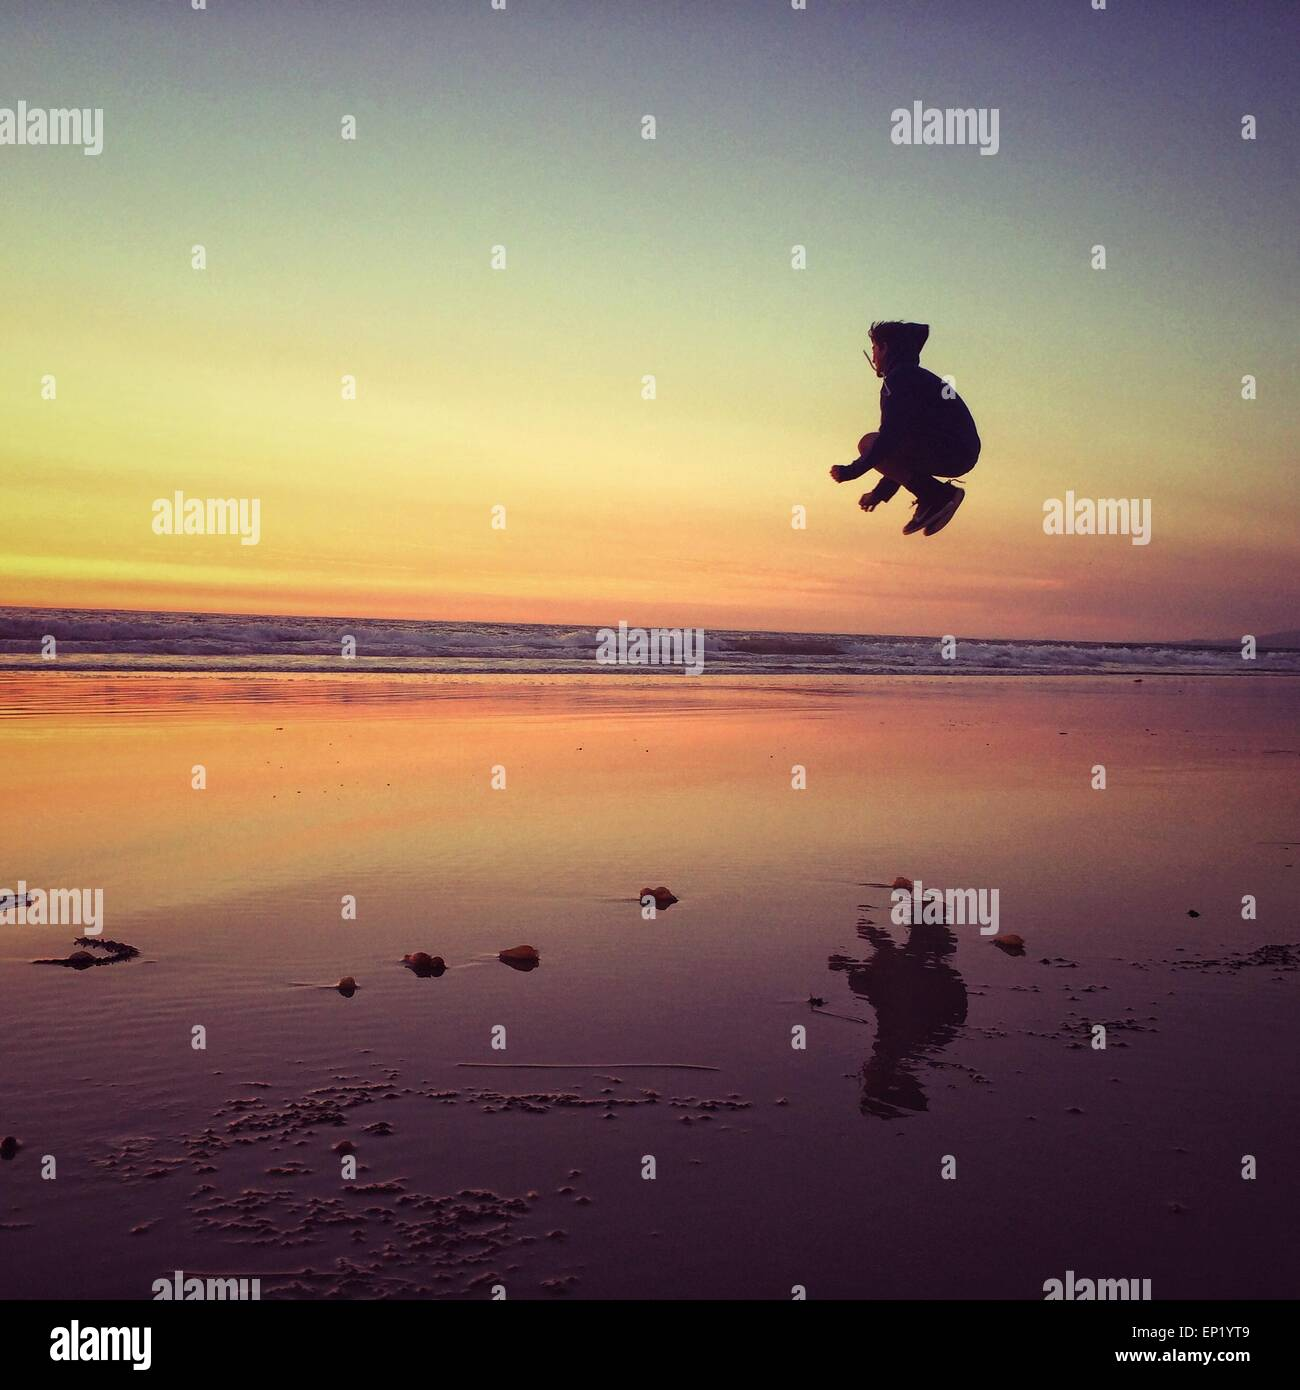 Boy jumping on the beach - Stock Image